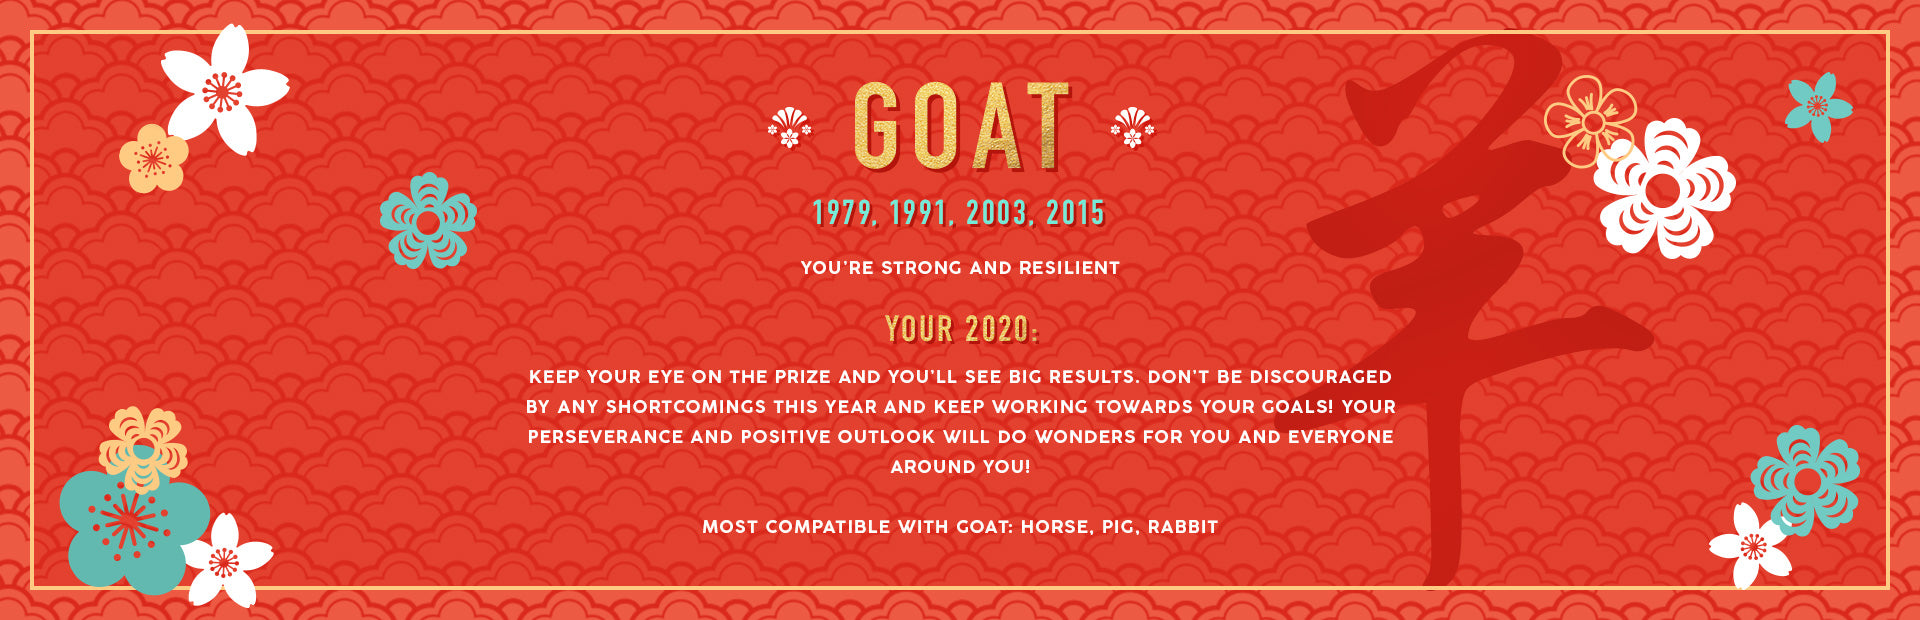 Goat Lunar New Year Collection Banner Image